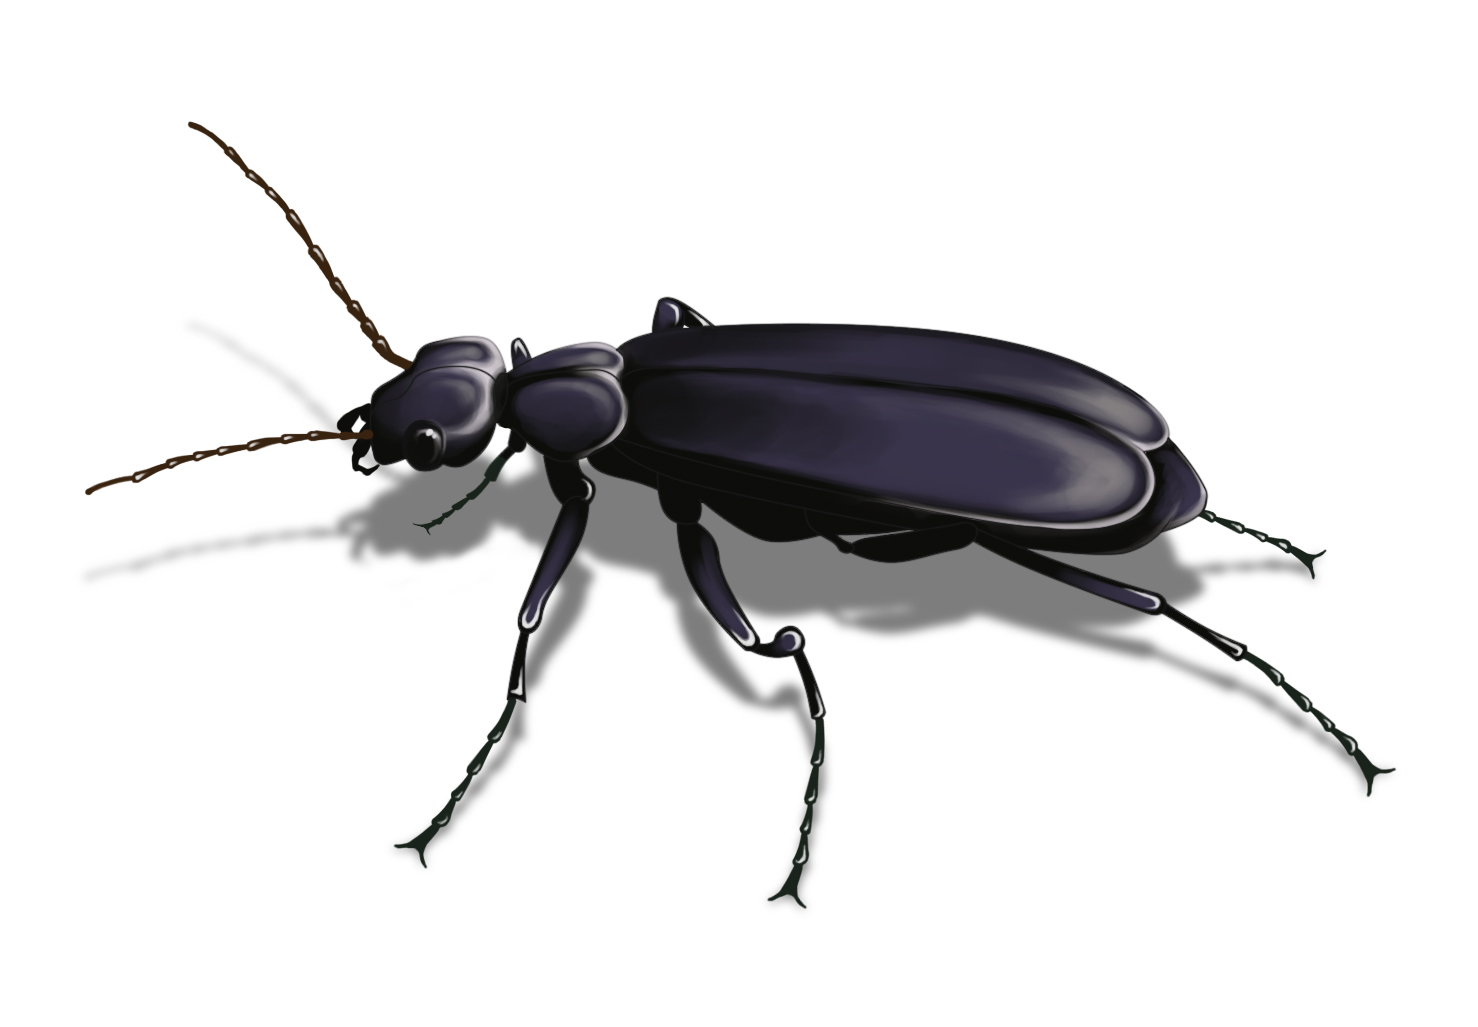 Pictures Of Beetles Beetle Images And Photo Gallery